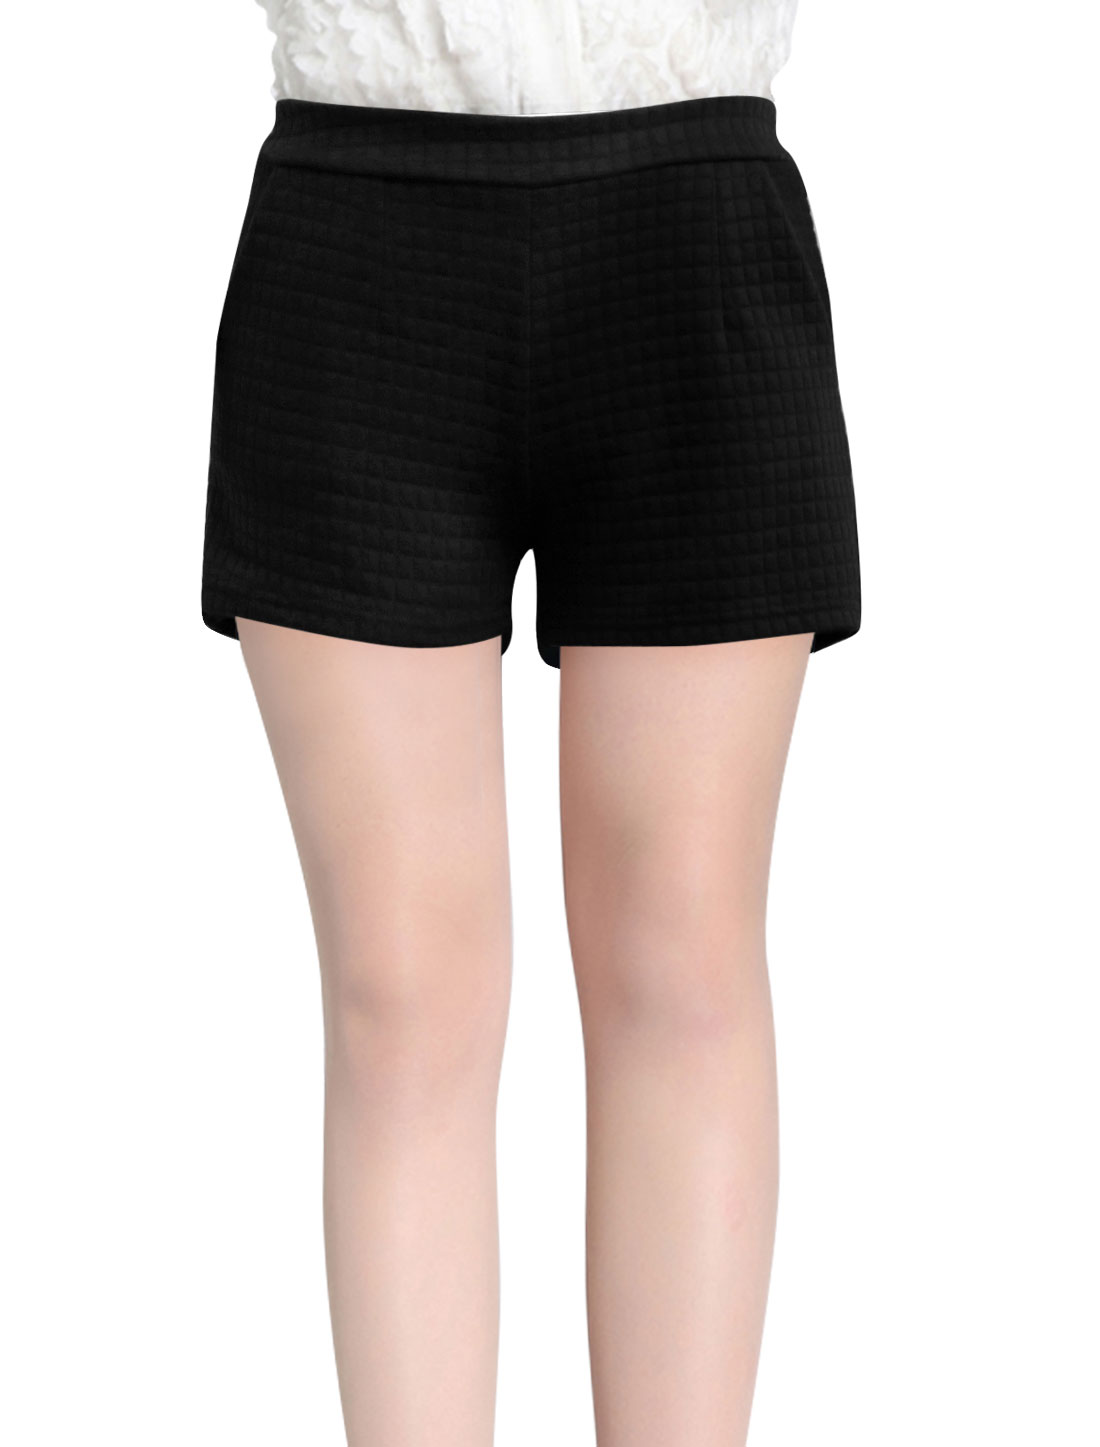 Natural Waist Plaids Design Casual Shorts for Women Black S